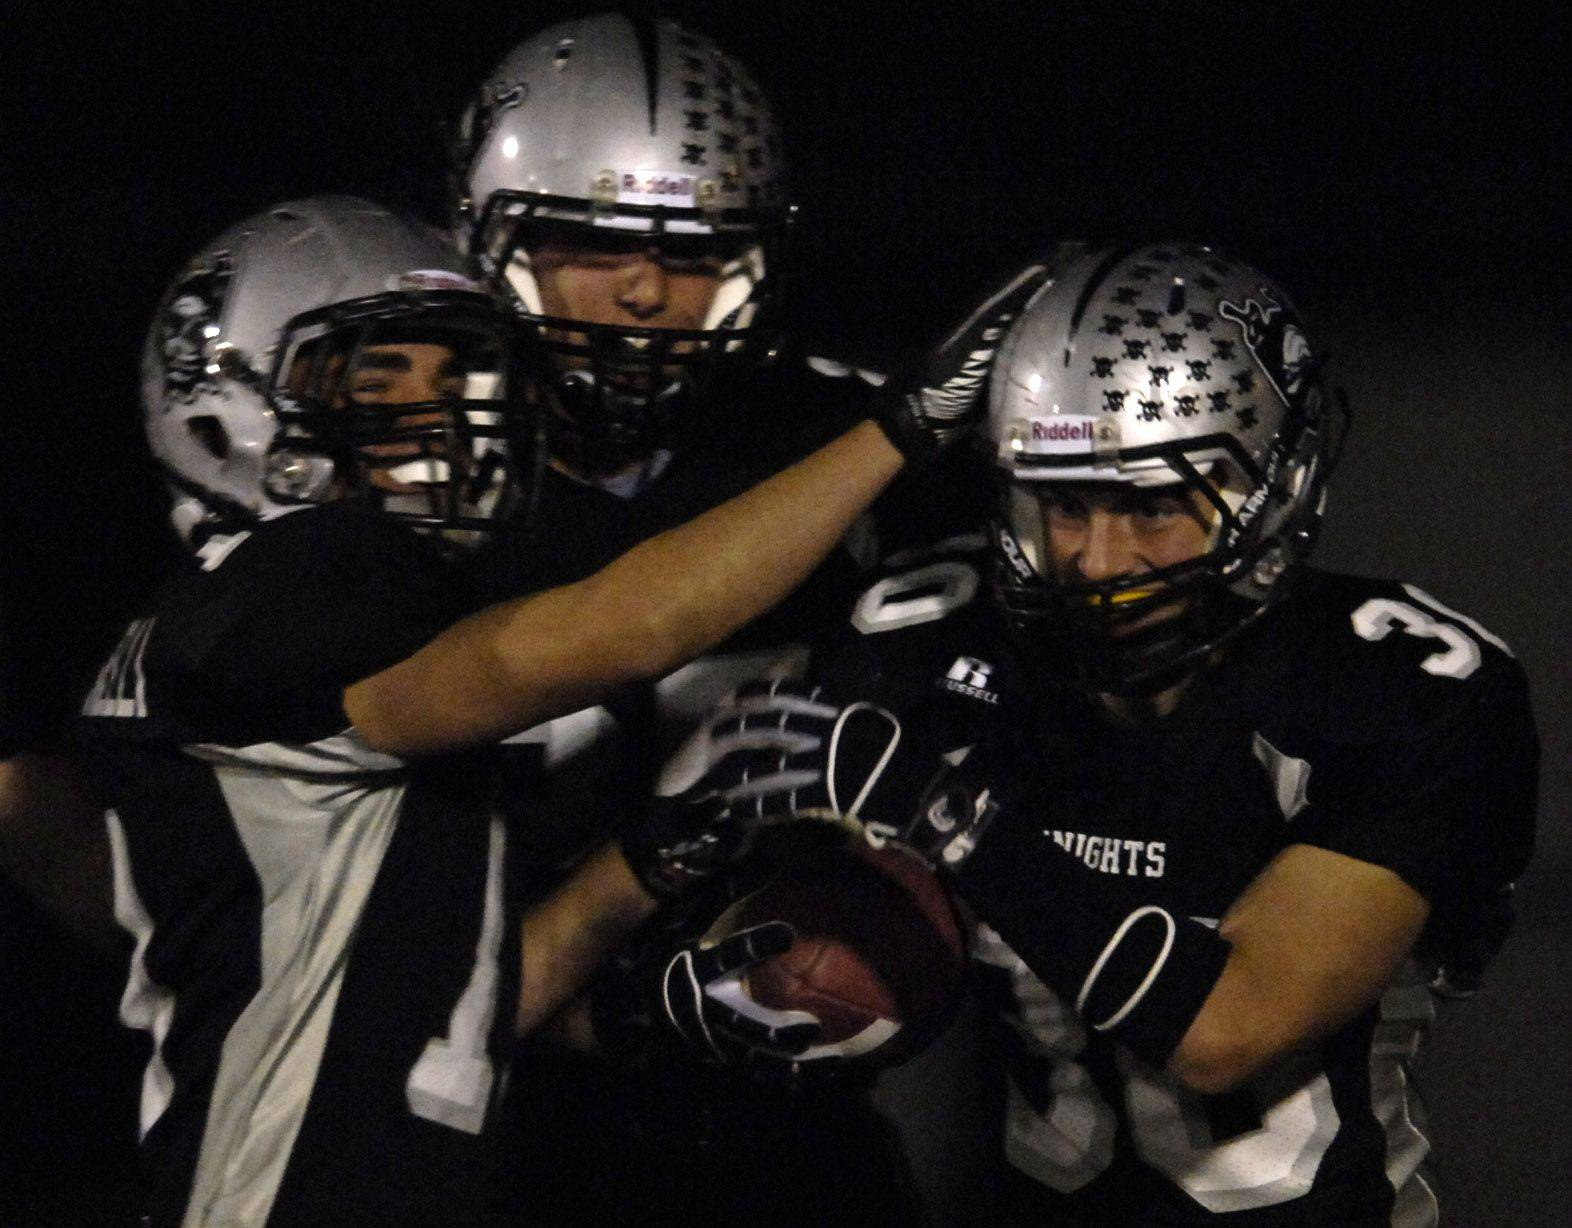 Kaneland advances after unbelievable ending